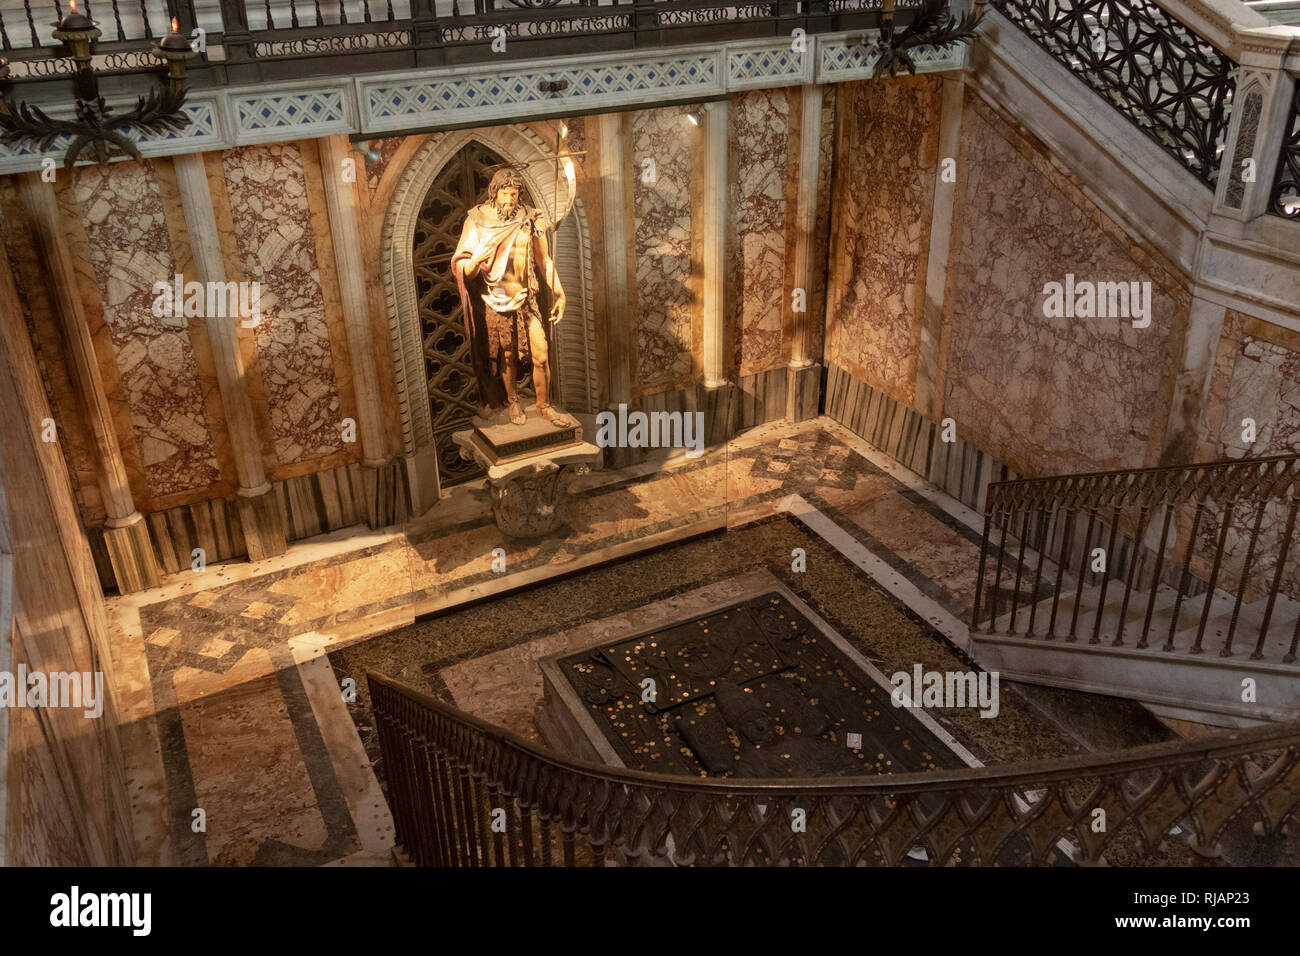 Saint John the Baptist at the Archbasilica of St. John Lateran, Cathedral of the Most Holy Savior and of Saints John the Baptist and the Evangelist in Stock Photo